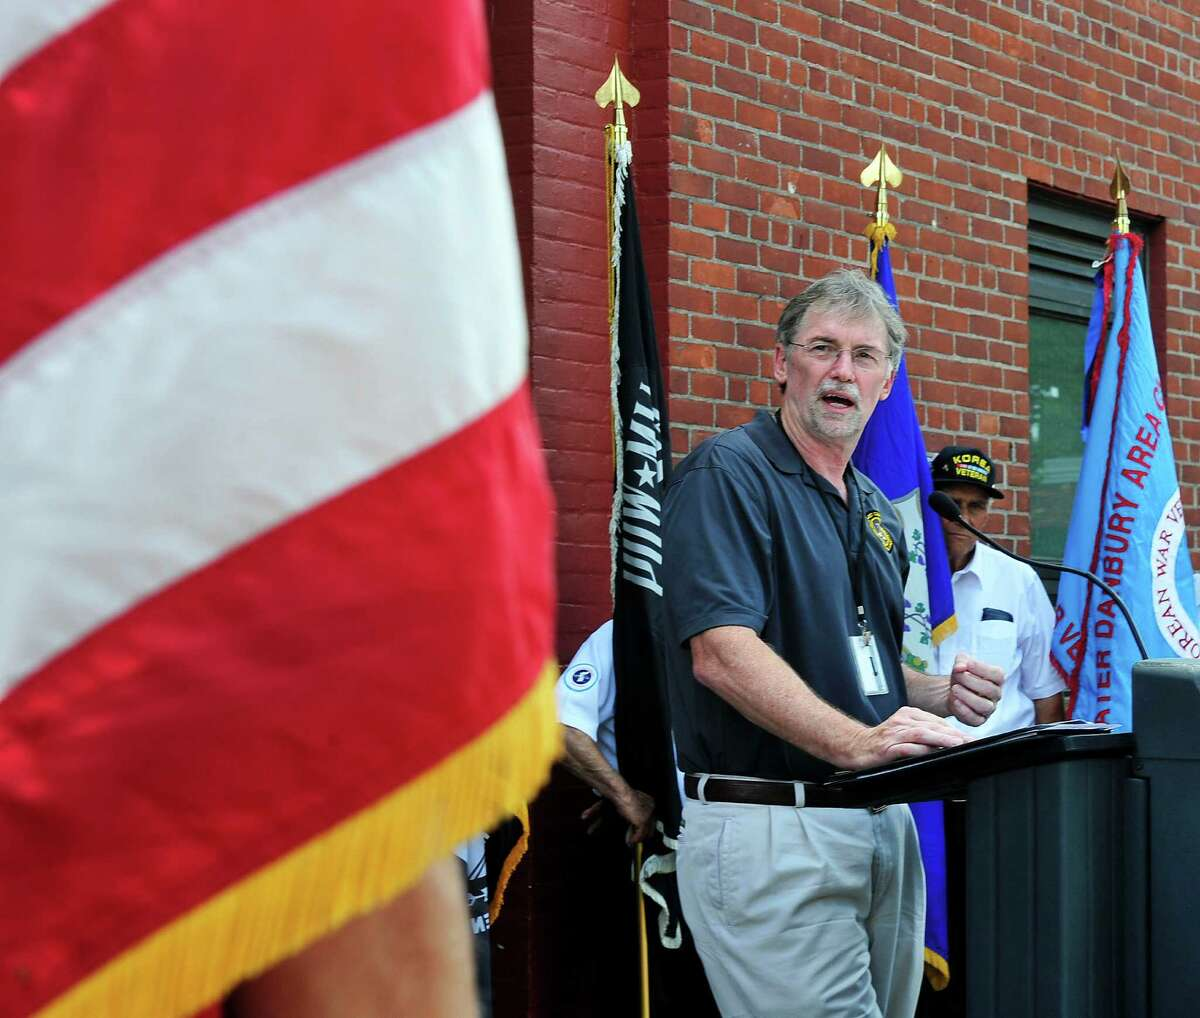 Thomas Quinn, of the U.S. Department of Vereran Affairs, is the guest speaker, as the Veterans Walkway of Honor dedication ceremony takes place at the Danbury War Memorial, in Danbury, Conn. Sunday, July 14, 2013.